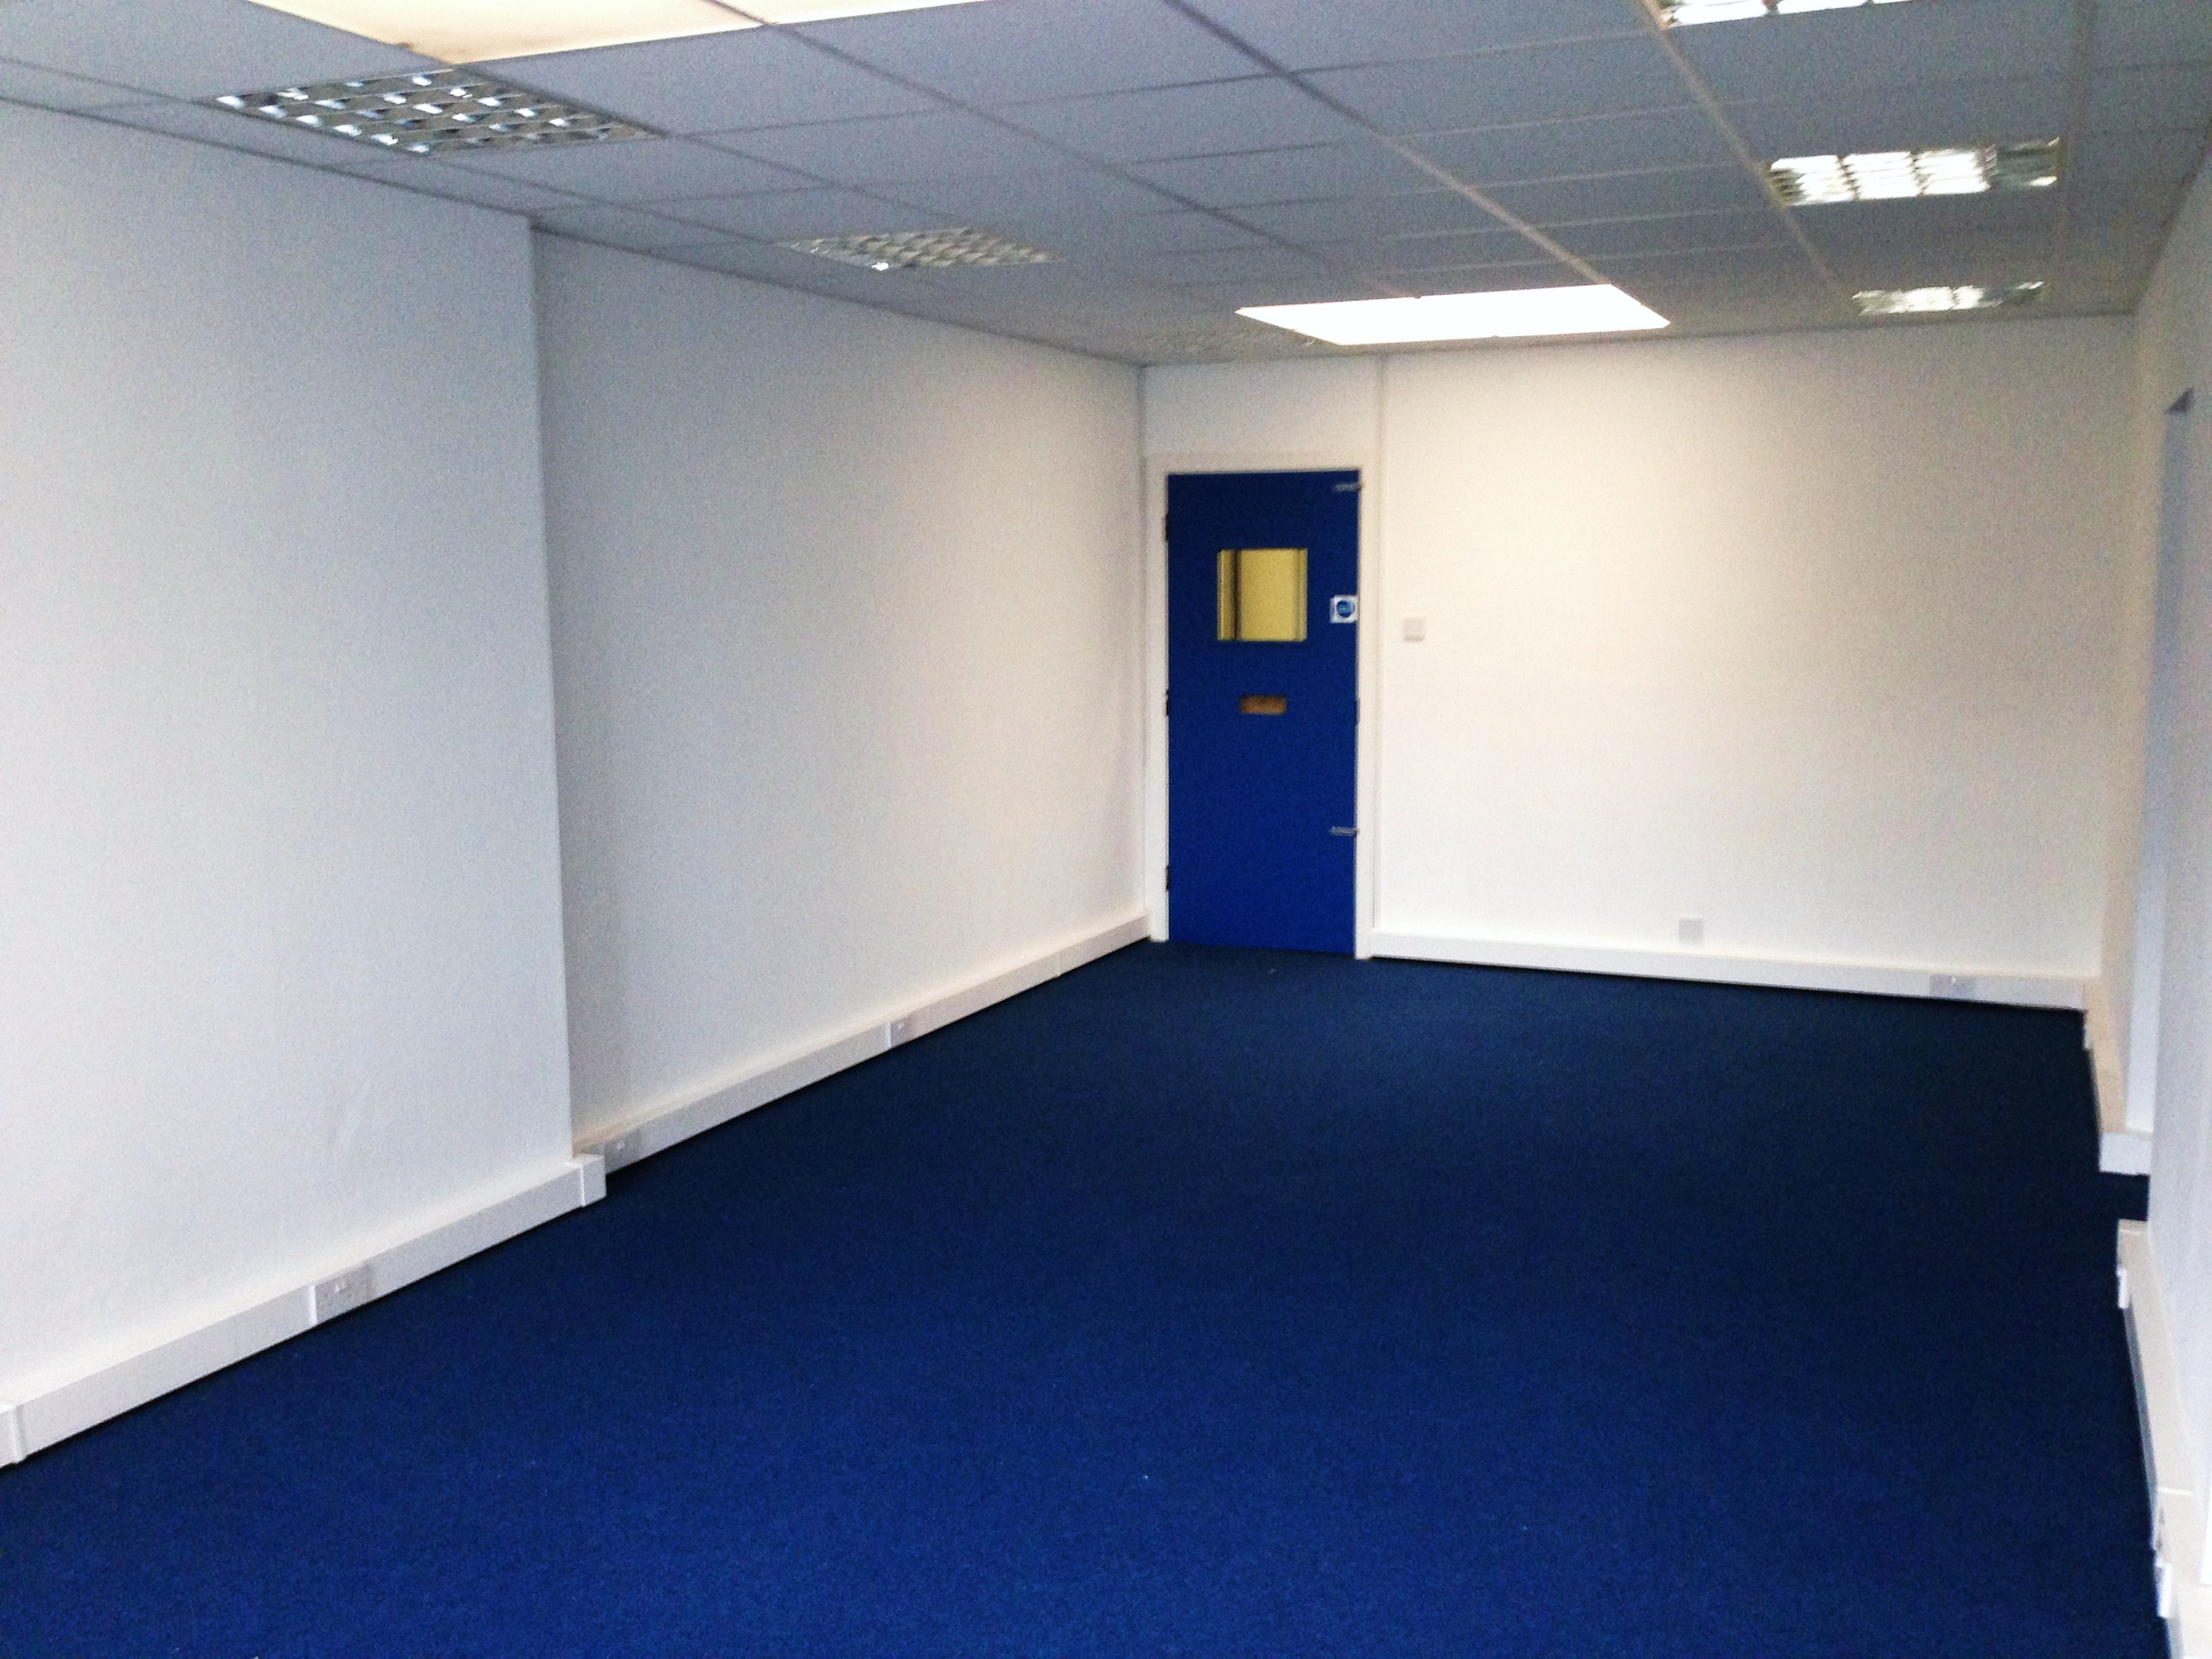 Office Space for Rent in Leeds West Yorkshire